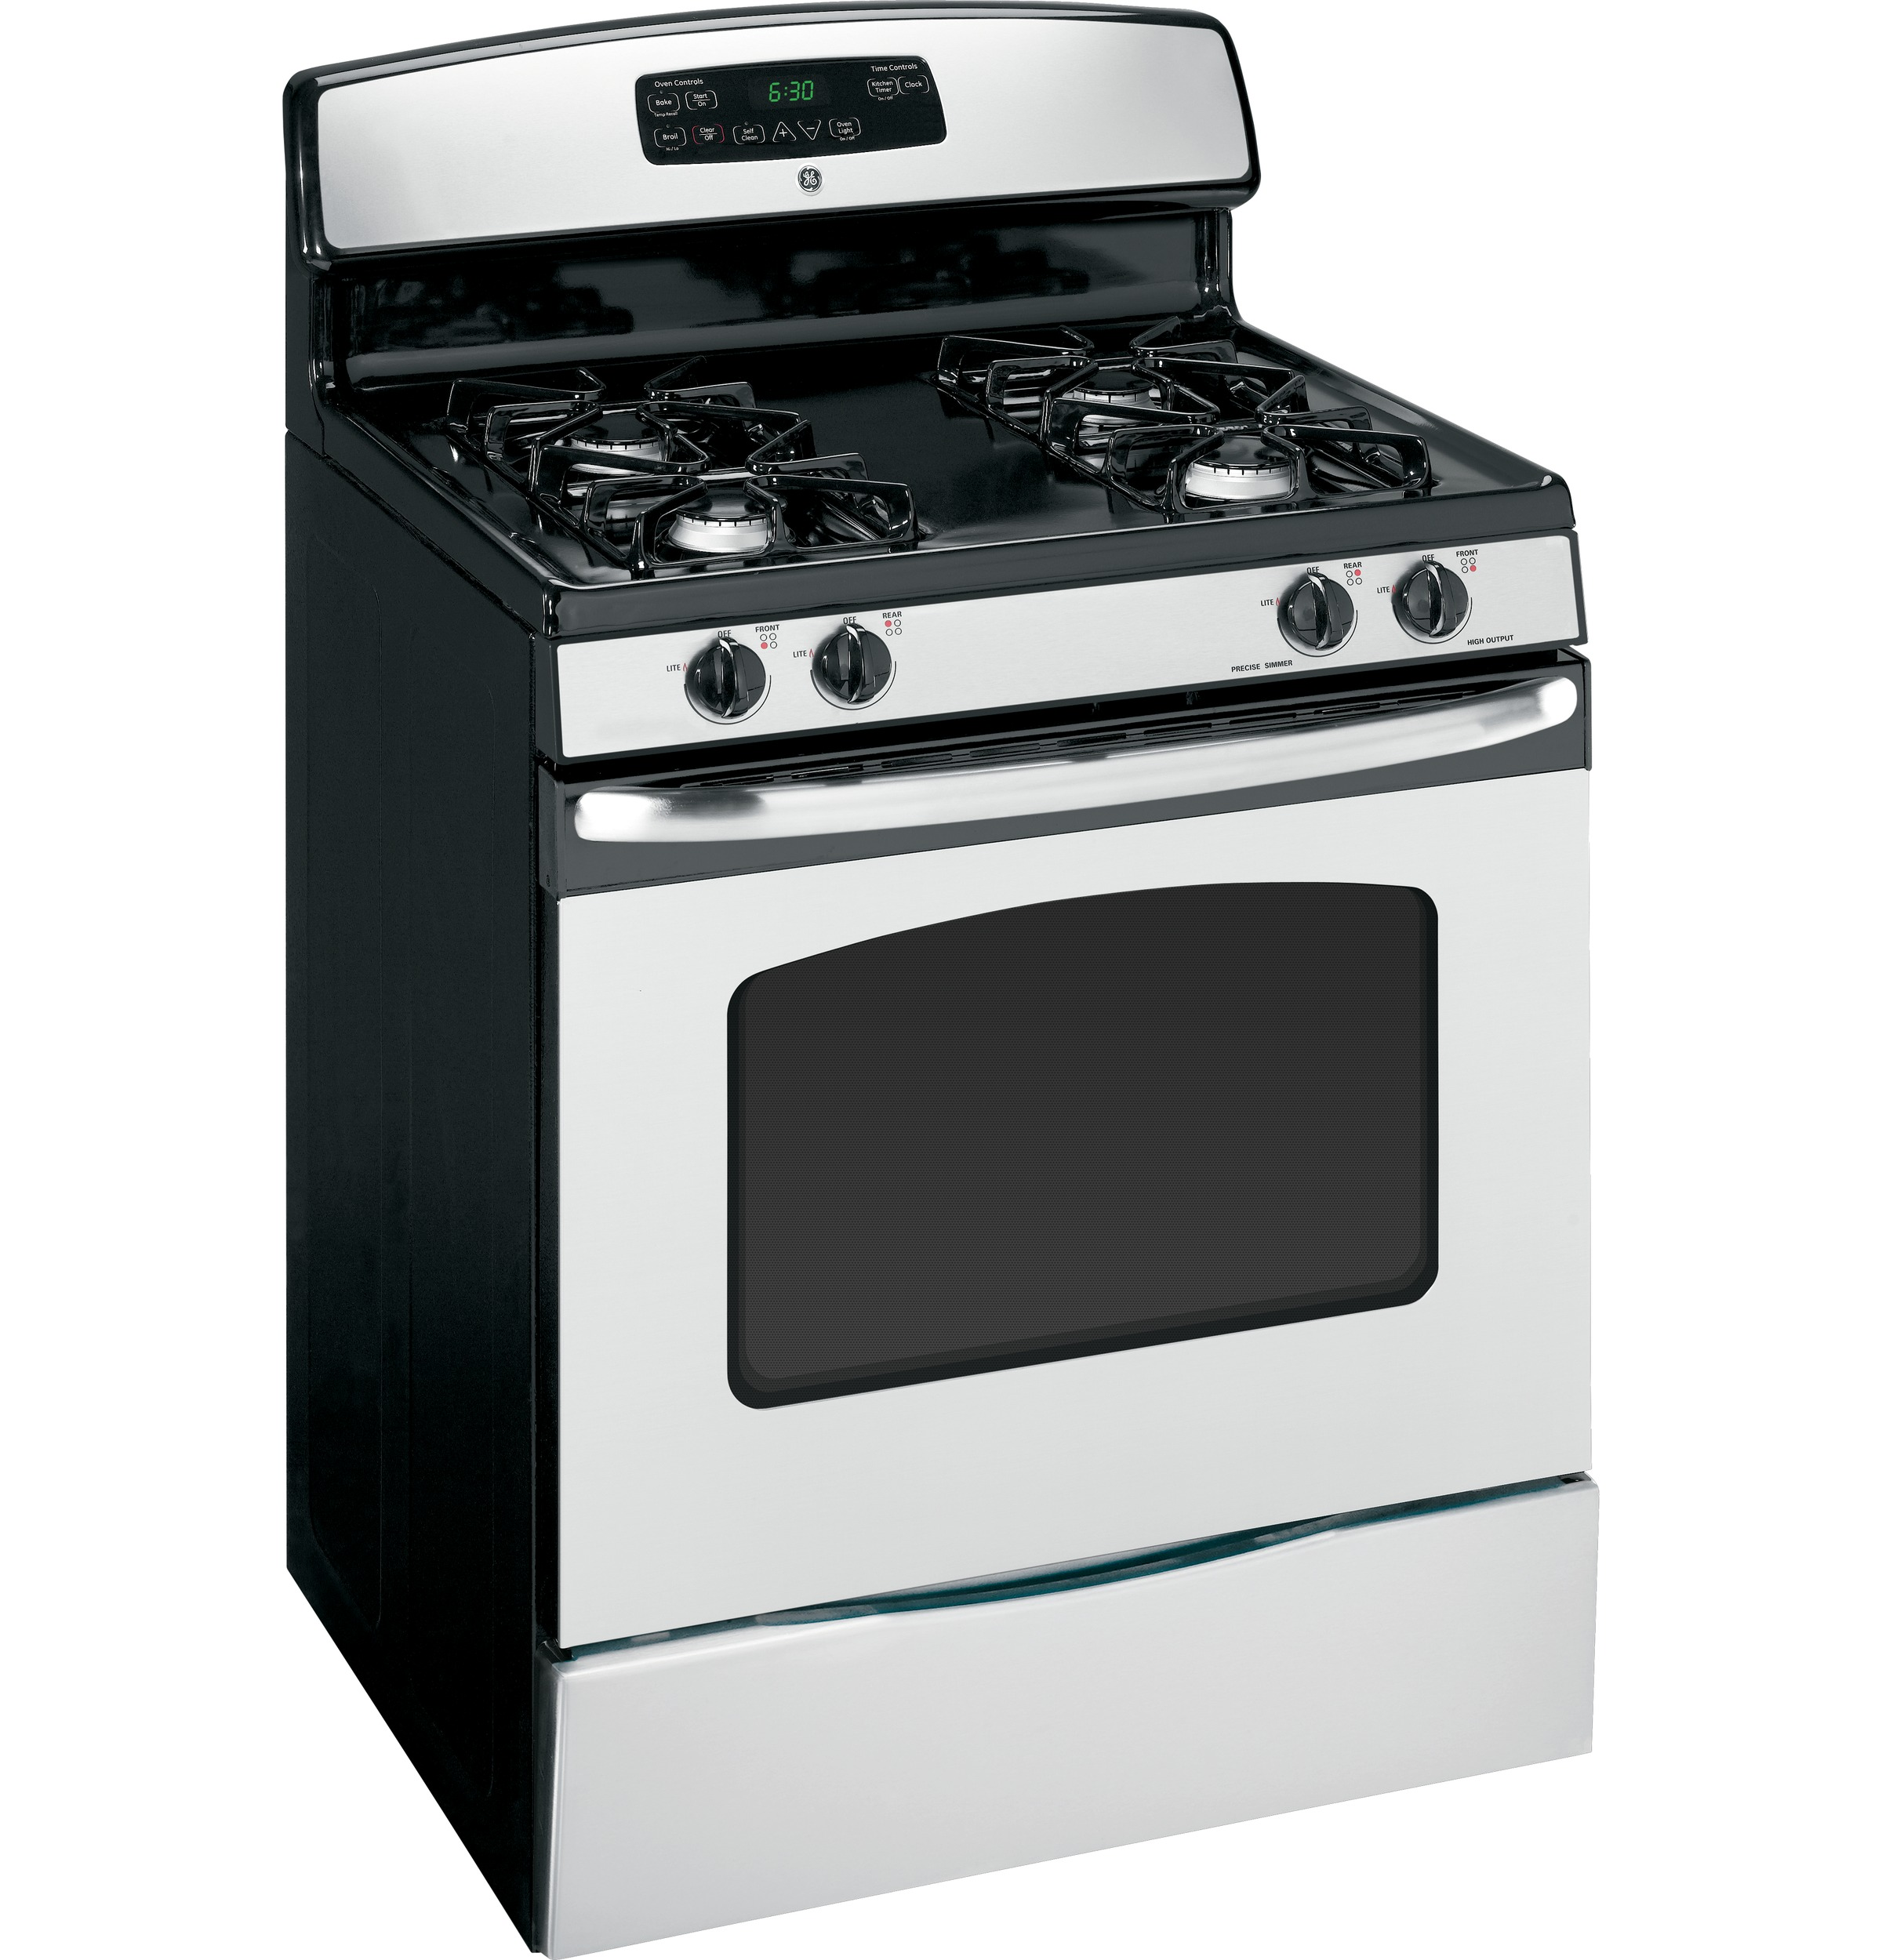 spectra ge stove home and furnitures reference spectra ge stove pin ge profile electric range model jcs968skss bosh 24 dishwasher